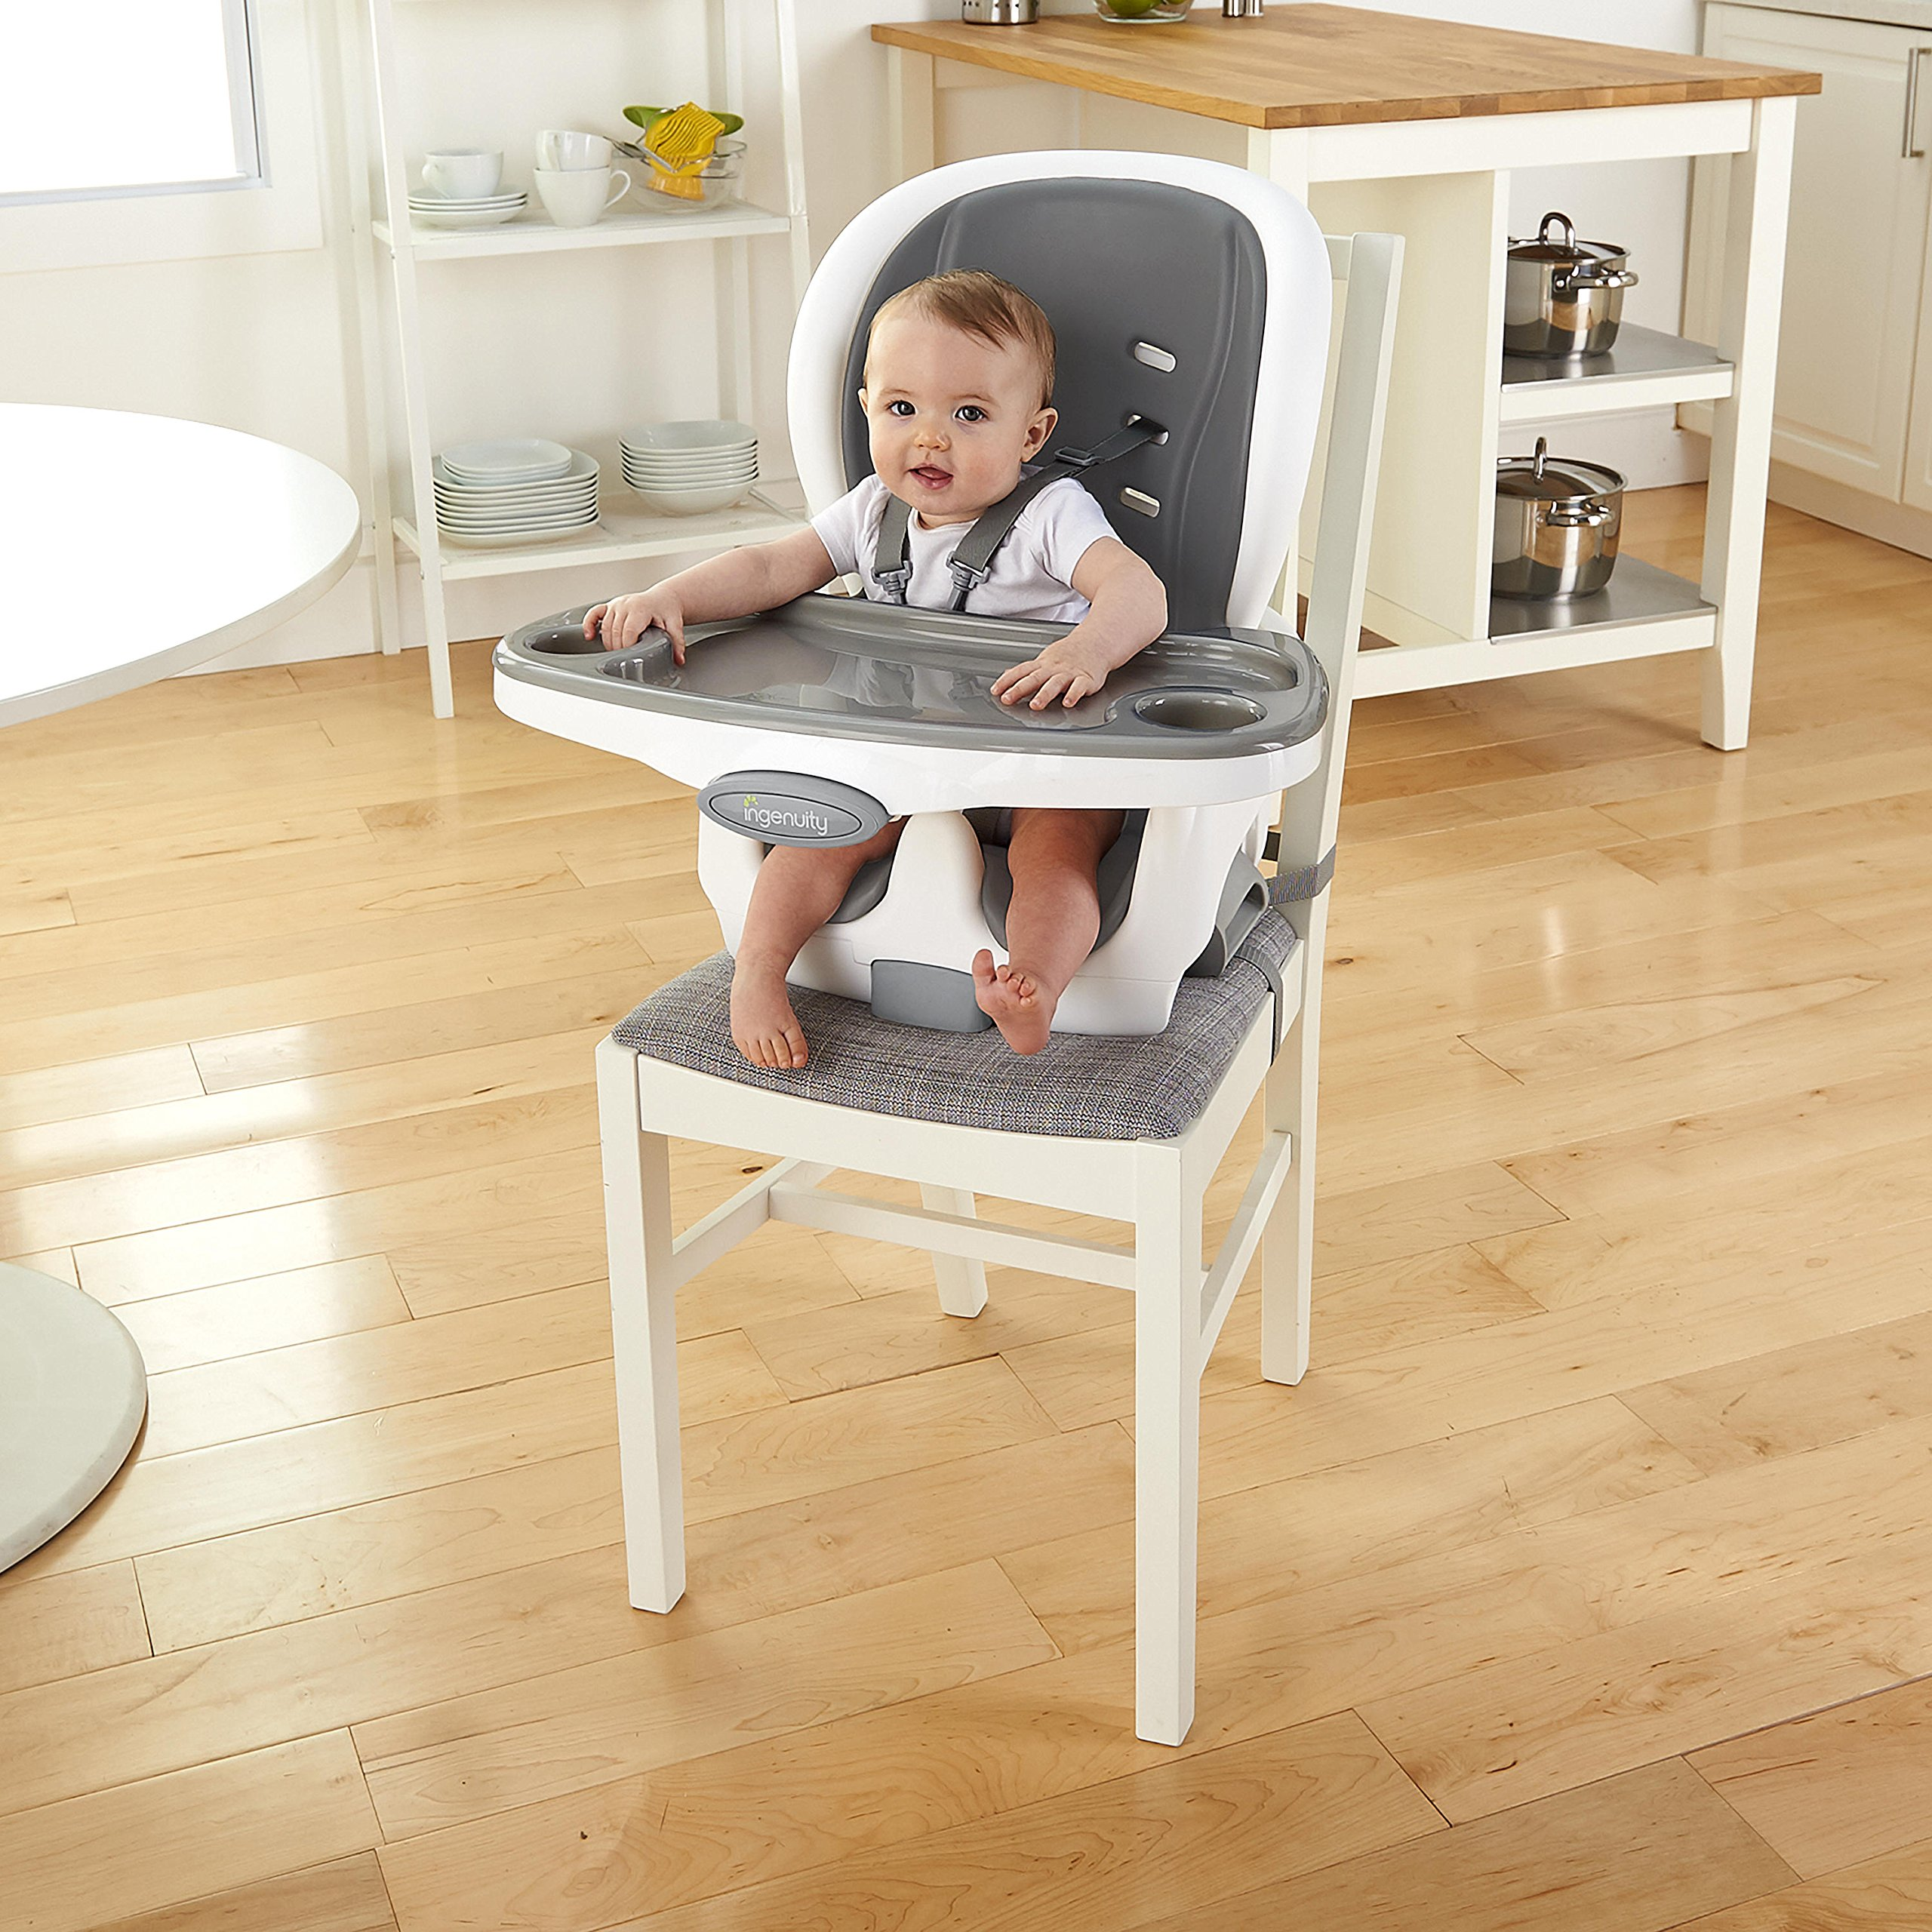 Ingenuity SmartClean Trio Elite 3-in-1 High Chair - Slate - High Chair, Toddler Chair, and Booster by Ingenuity (Image #8)